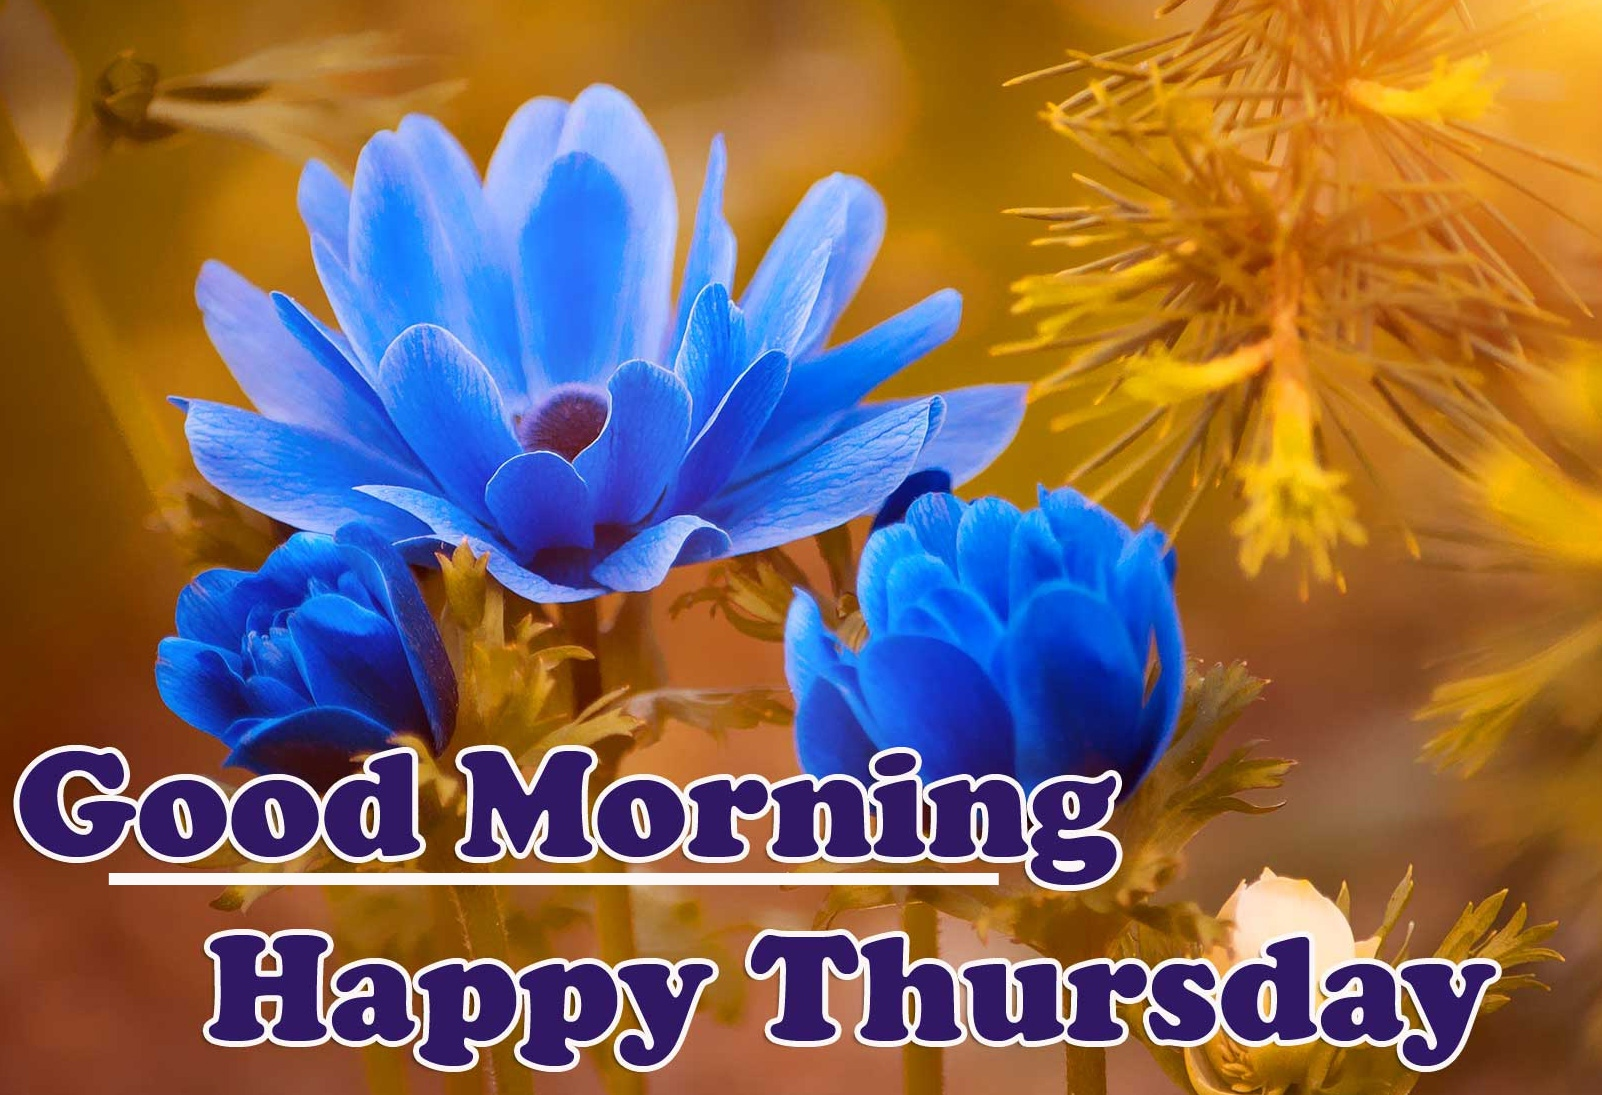 Flower Free Good Morning Thursday Images Pics Download